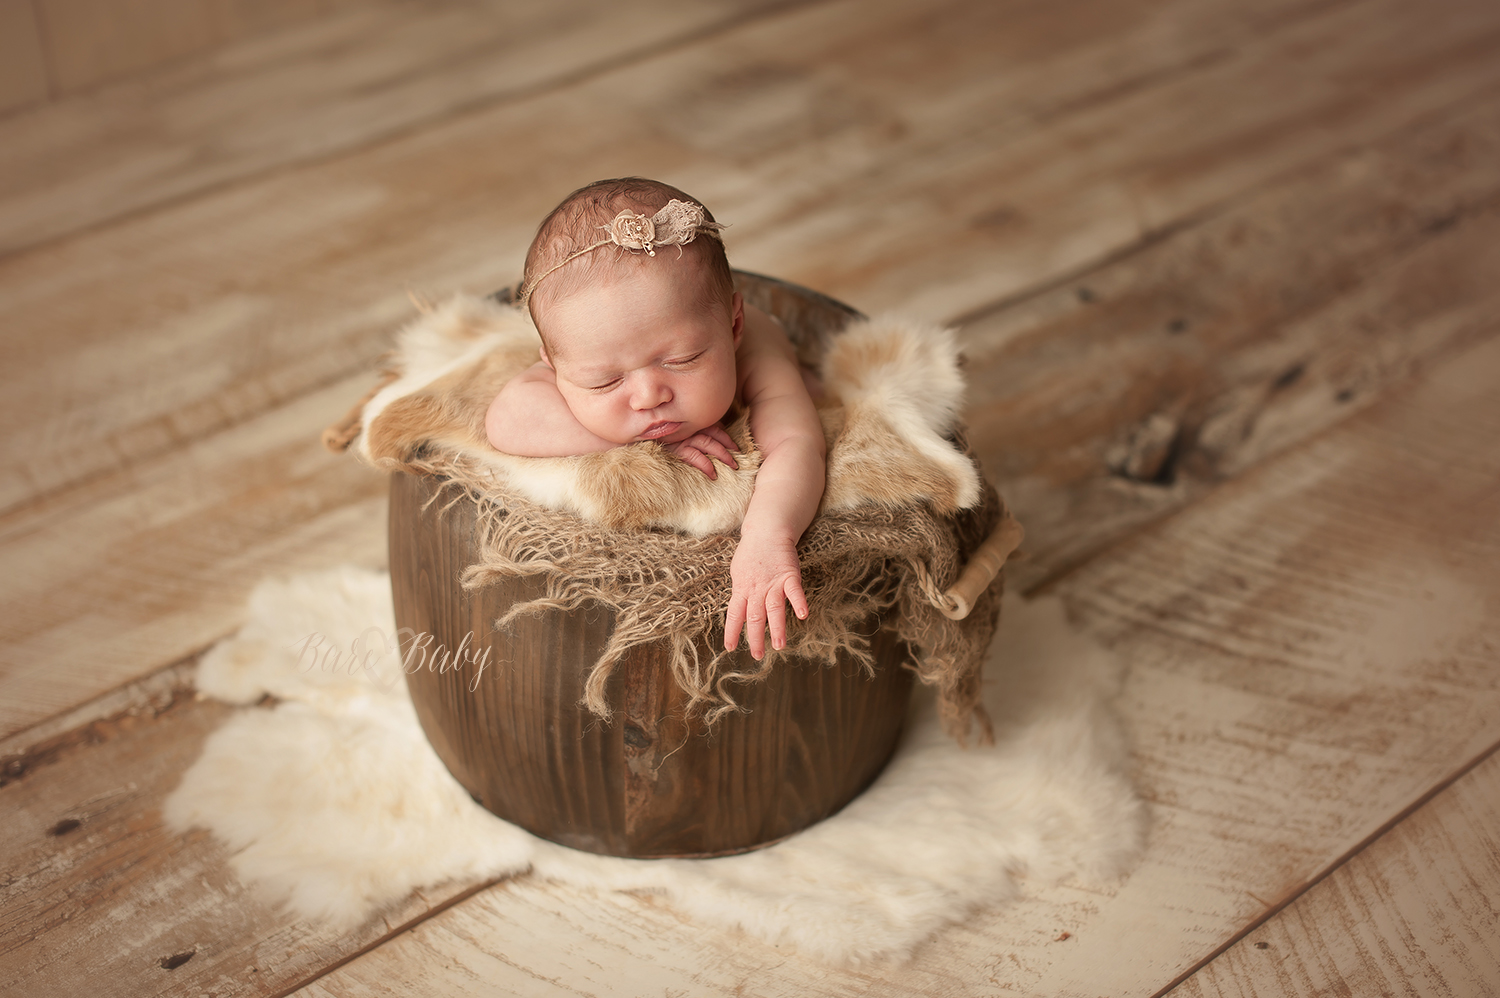 cirvleville-ohio-newborn-photographer.jpg